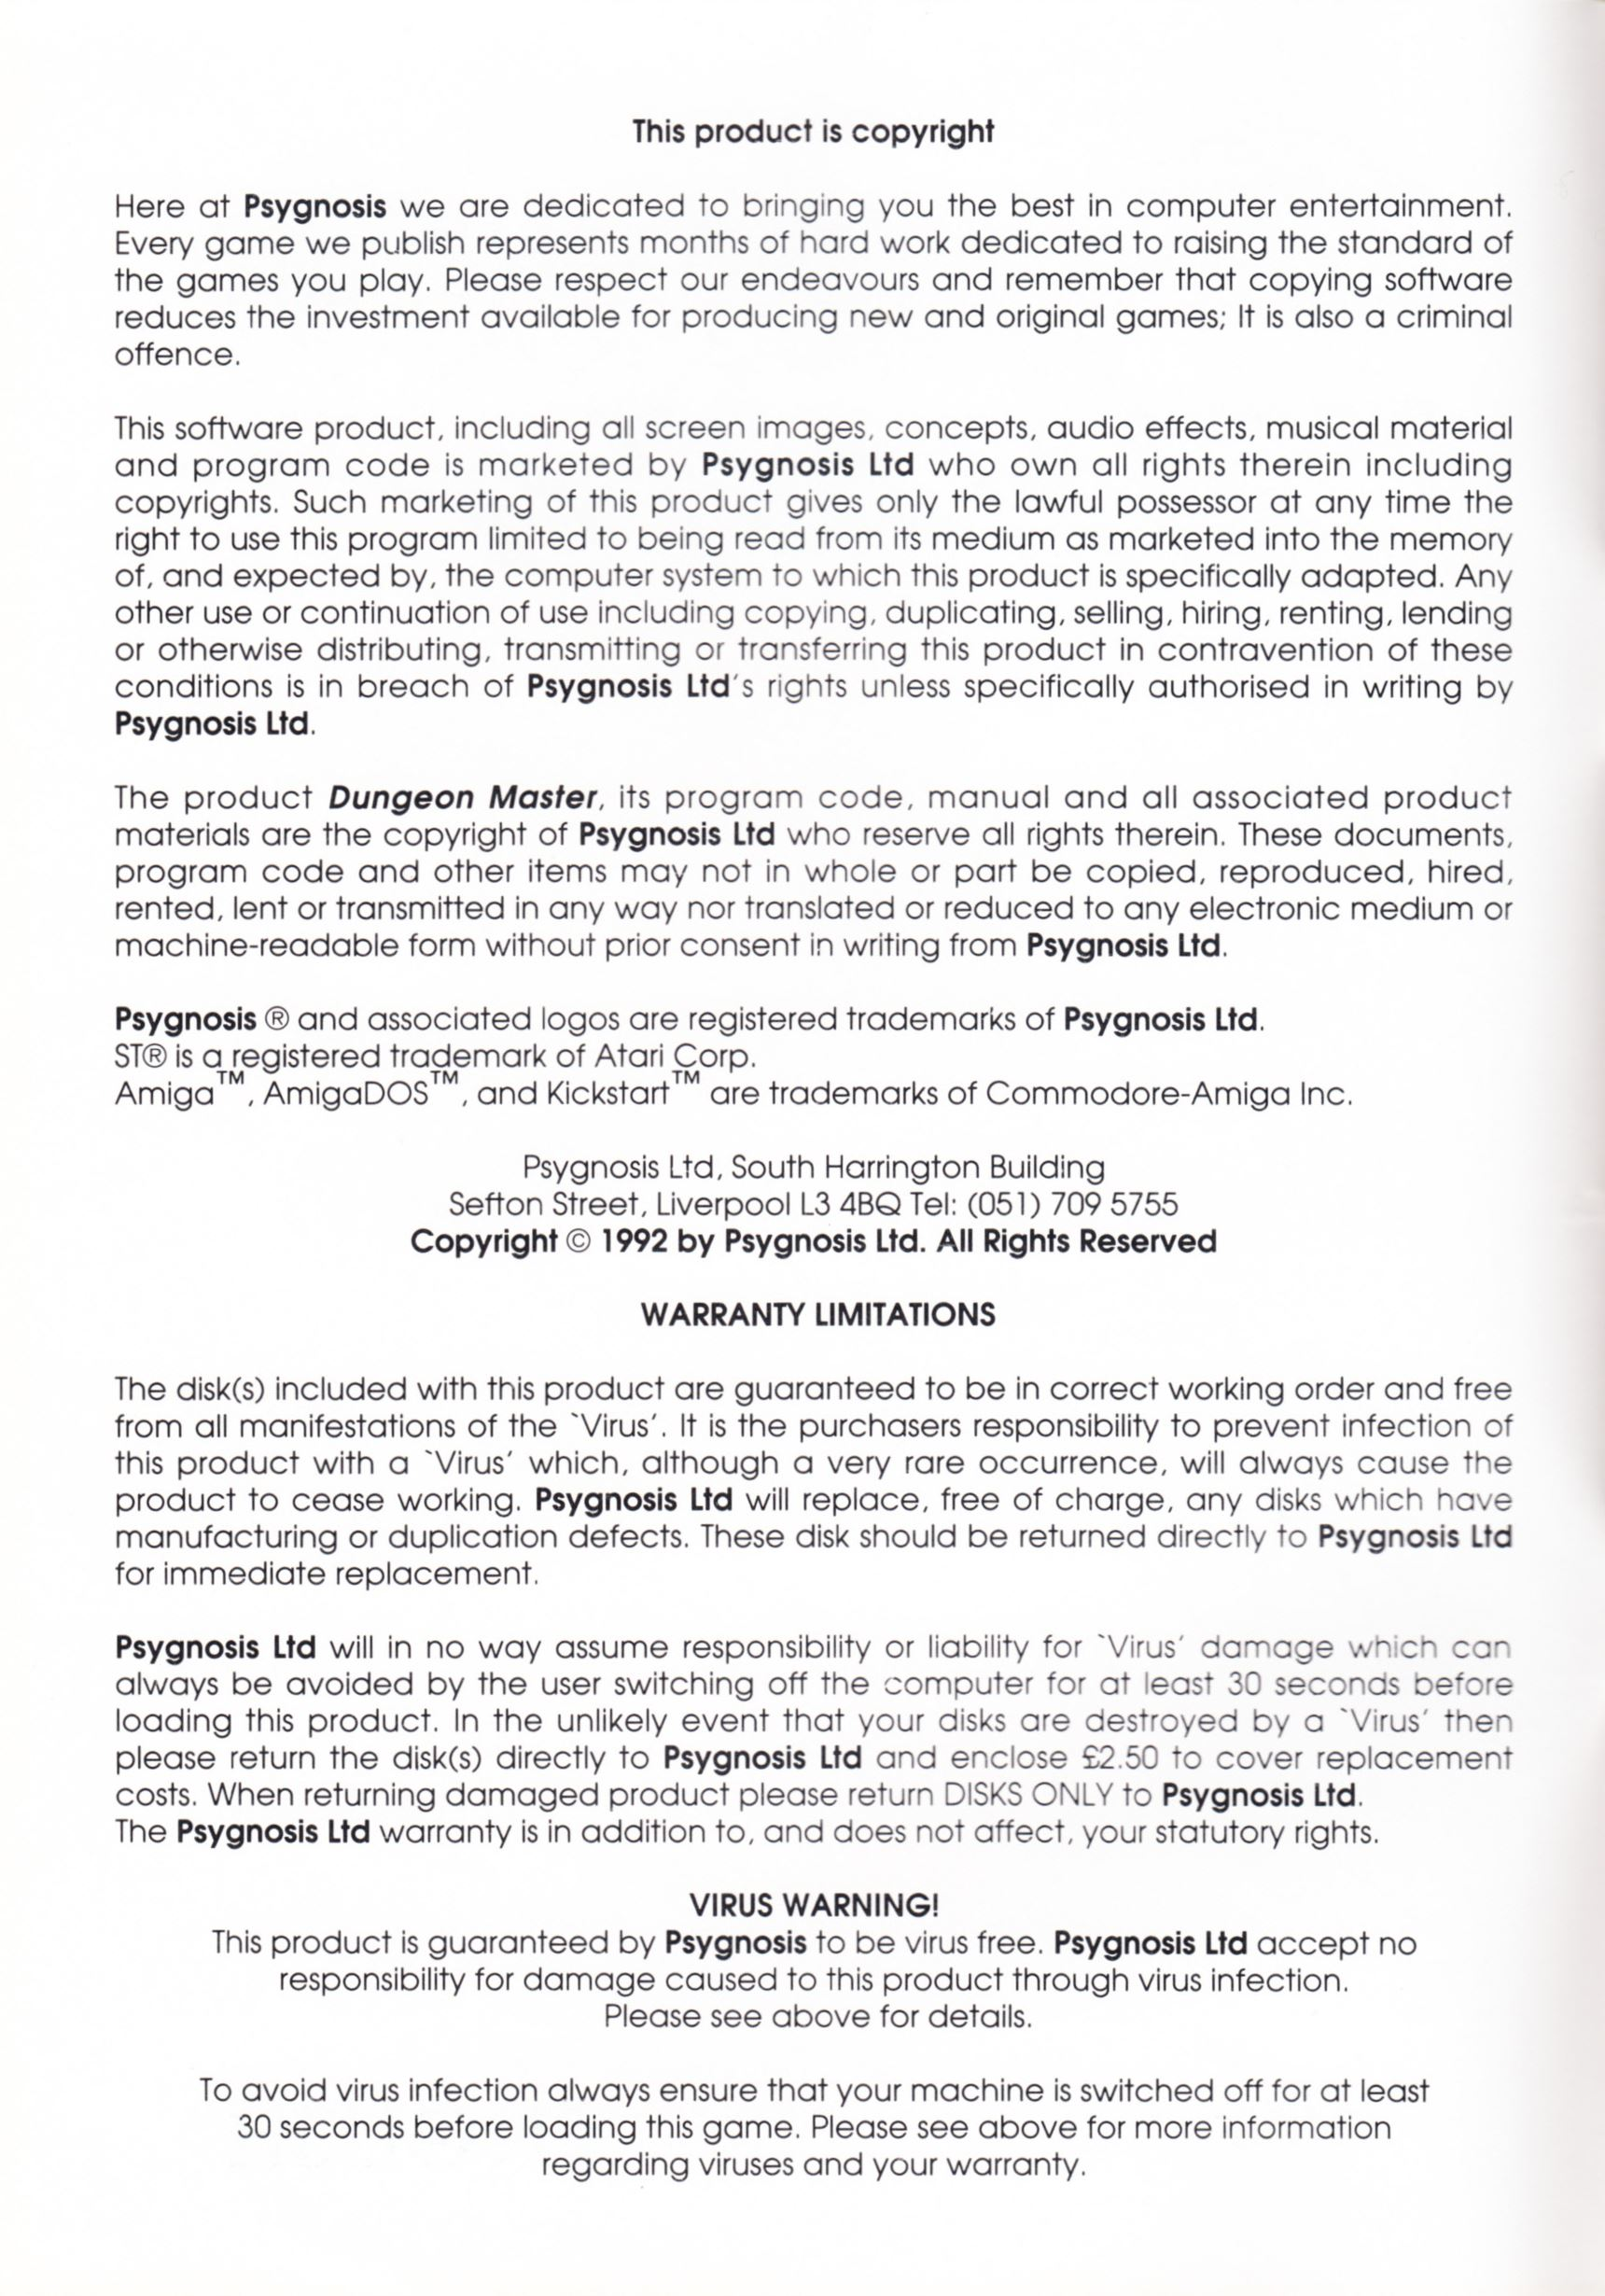 Game - Dungeon Master - UK - PC - Psygnosis - Manual - Page 002 - Scan